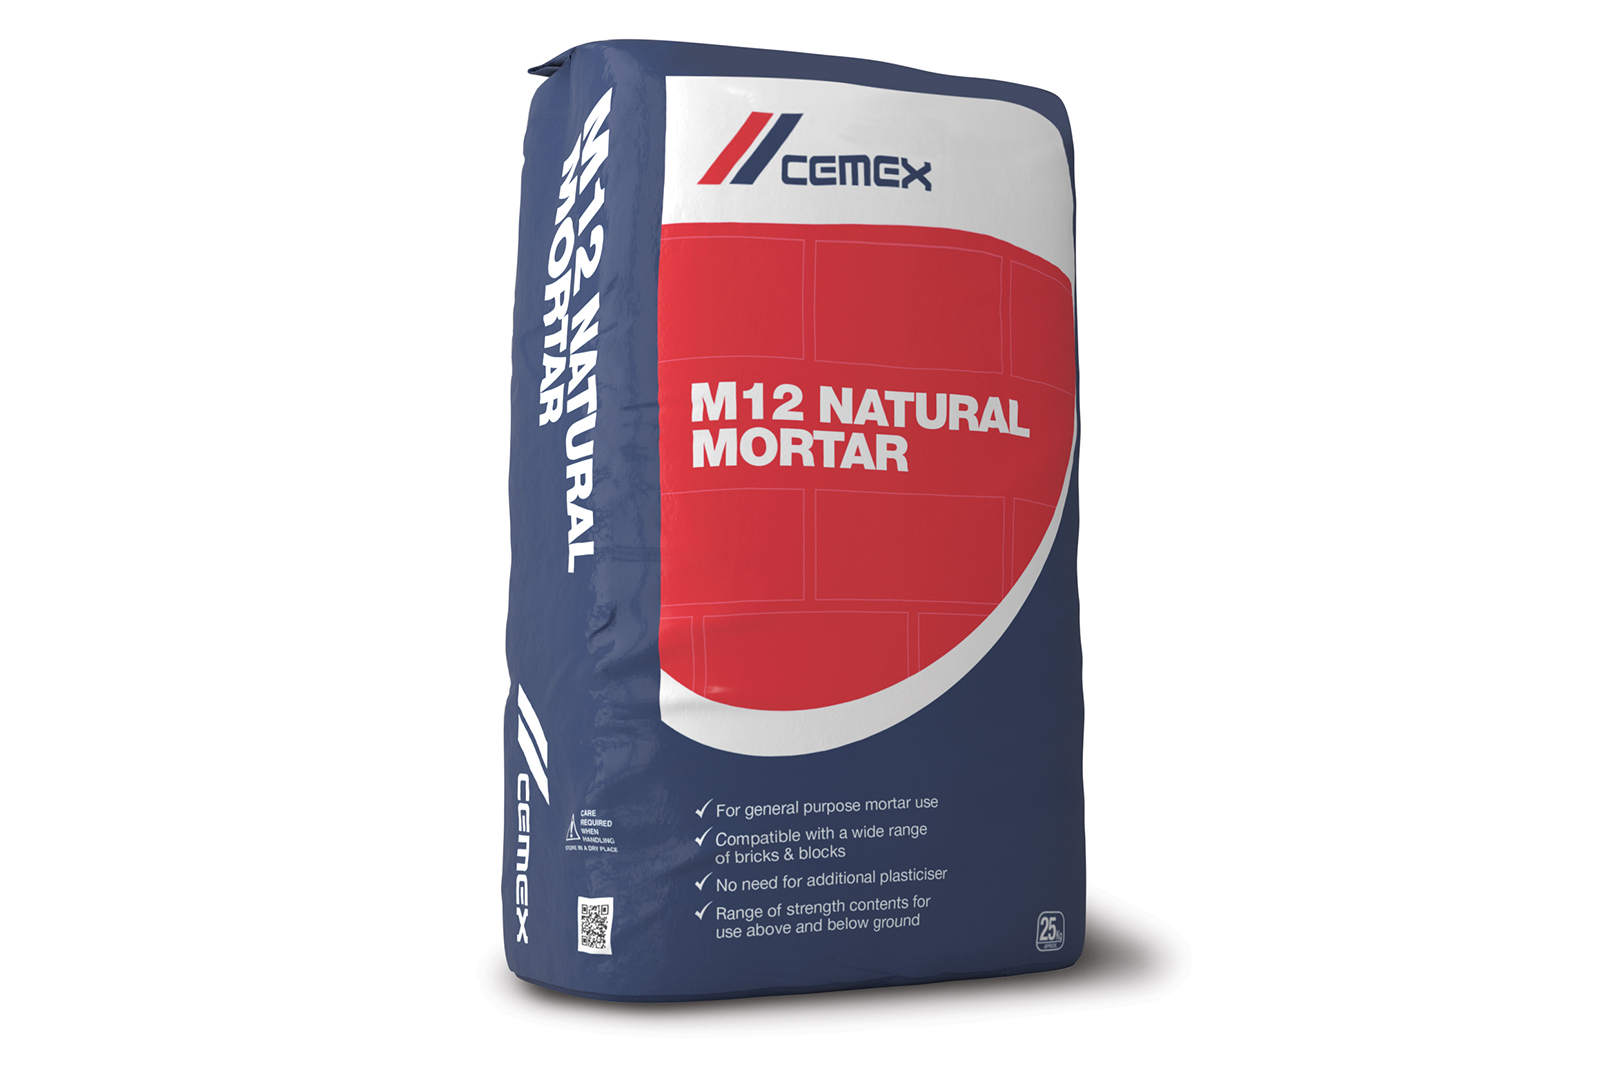 CEMEX broadens product range to include dry bagged mortar